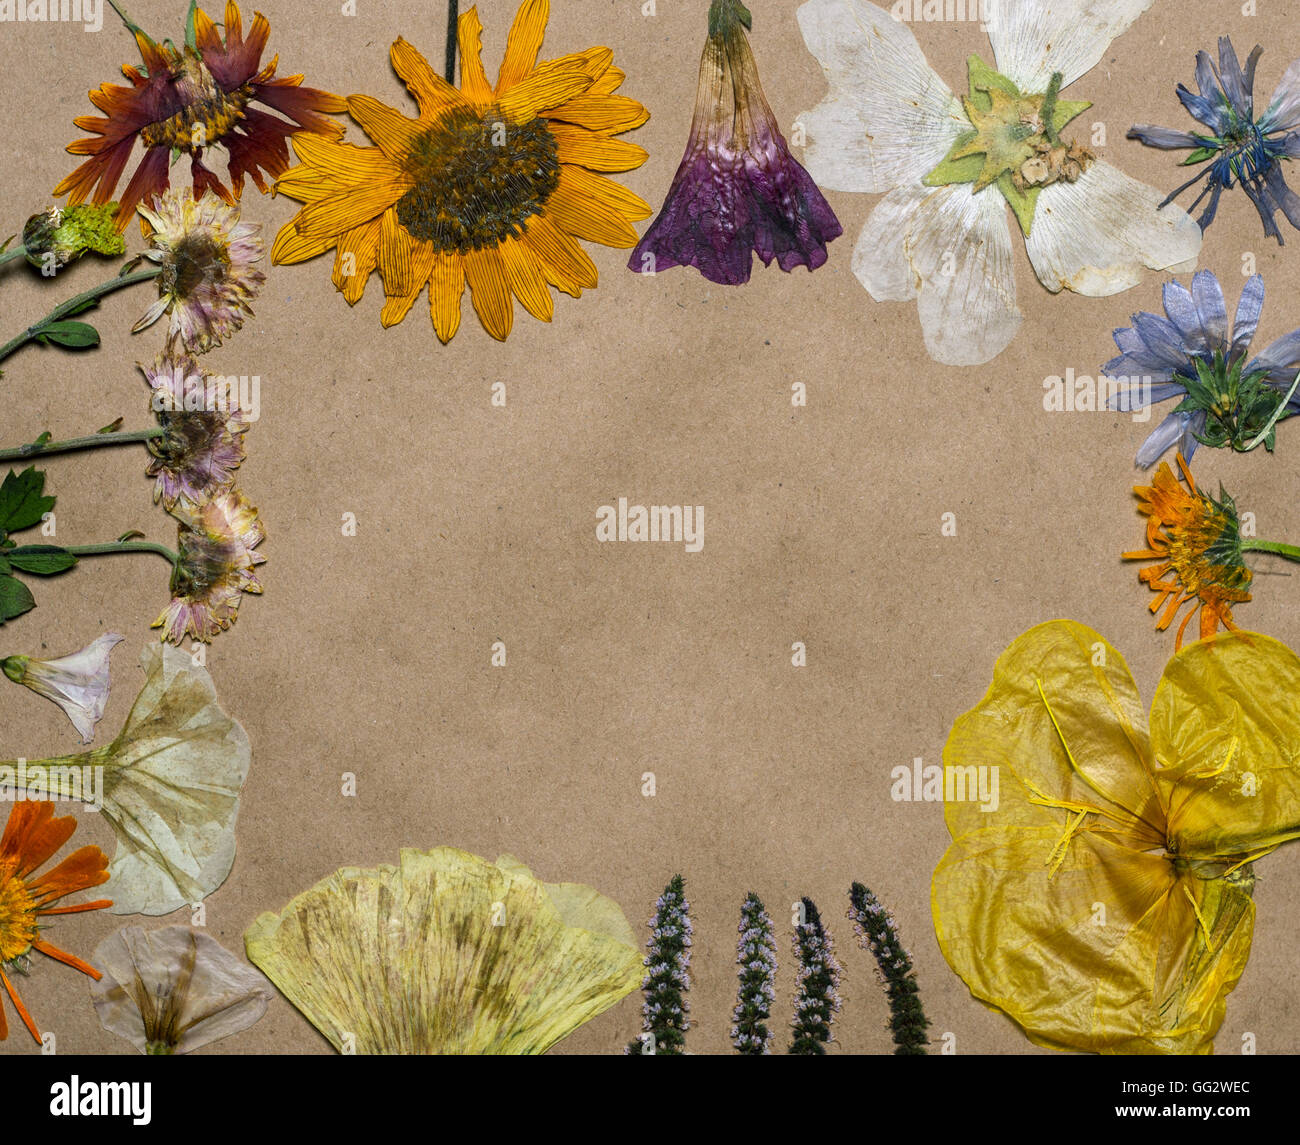 Pressed Wild Flowers Composed In A Frame On Craft Paper Stock Photo